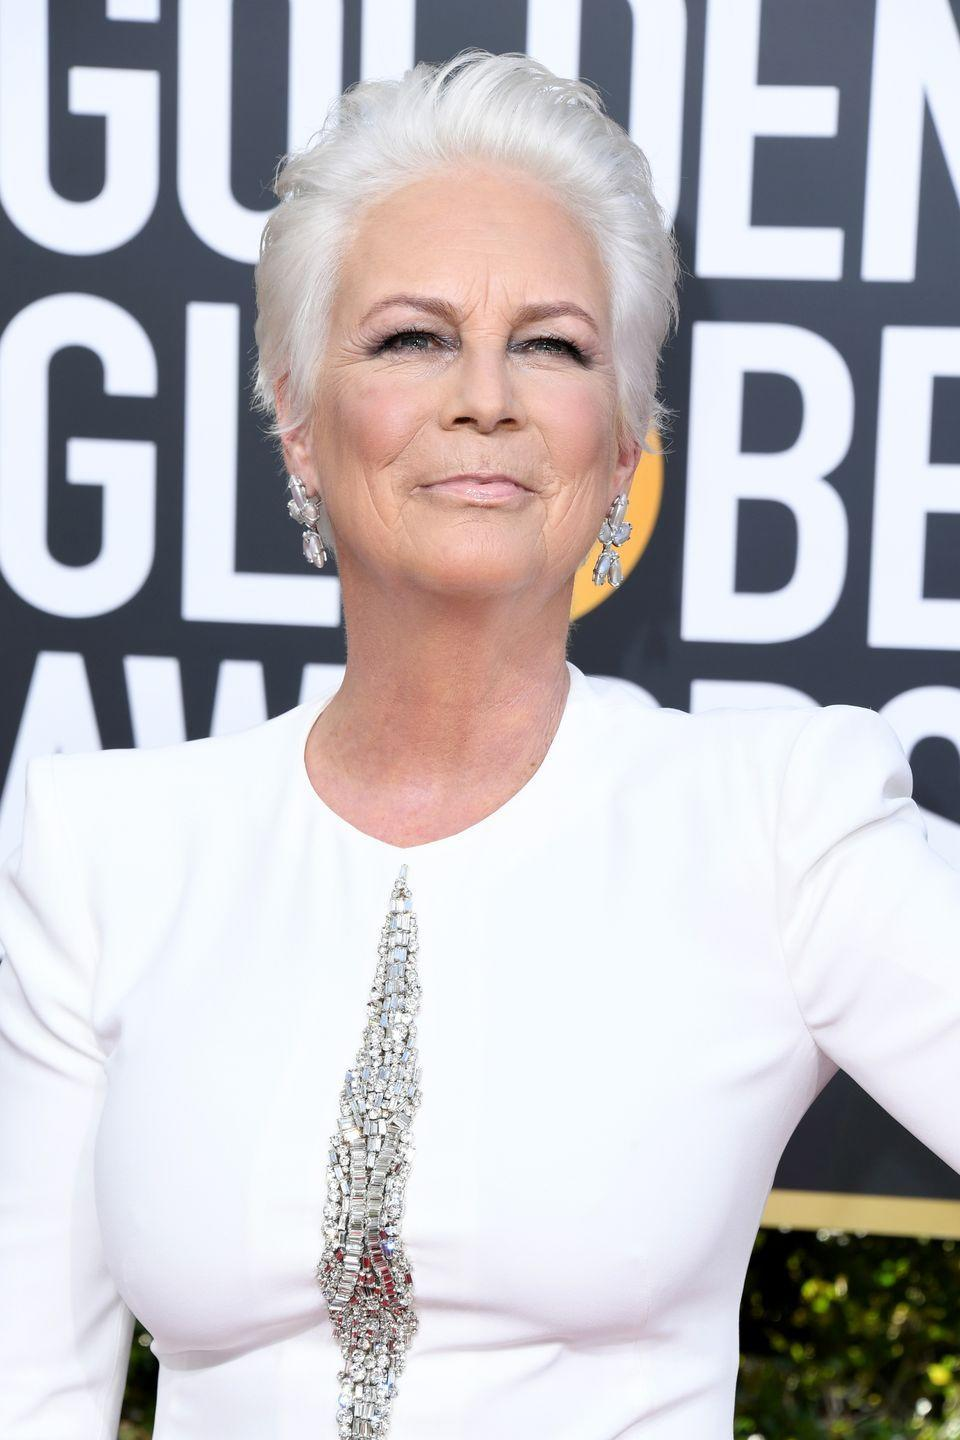 "<p>Icon Jamie Lee Curtis said she's had a little bit of everything when it comes to plastic surgery but that people shouldn't waste their money. ""I've done it all. I've had a little plastic surgery,"" <a href=""https://www.telegraph.co.uk/news/worldnews/northamerica/usa/1405016/Nips-tucks-and-liposuction-dont-work-Ive-still-got-bad-thighs-and-a-fat-tummy.html"" rel=""nofollow noopener"" target=""_blank"" data-ylk=""slk:she said"" class=""link rapid-noclick-resp"">she said</a>. ""I've had a little lipo. I've had a little Botox. And you know what? None of it works. None of it.""</p>"